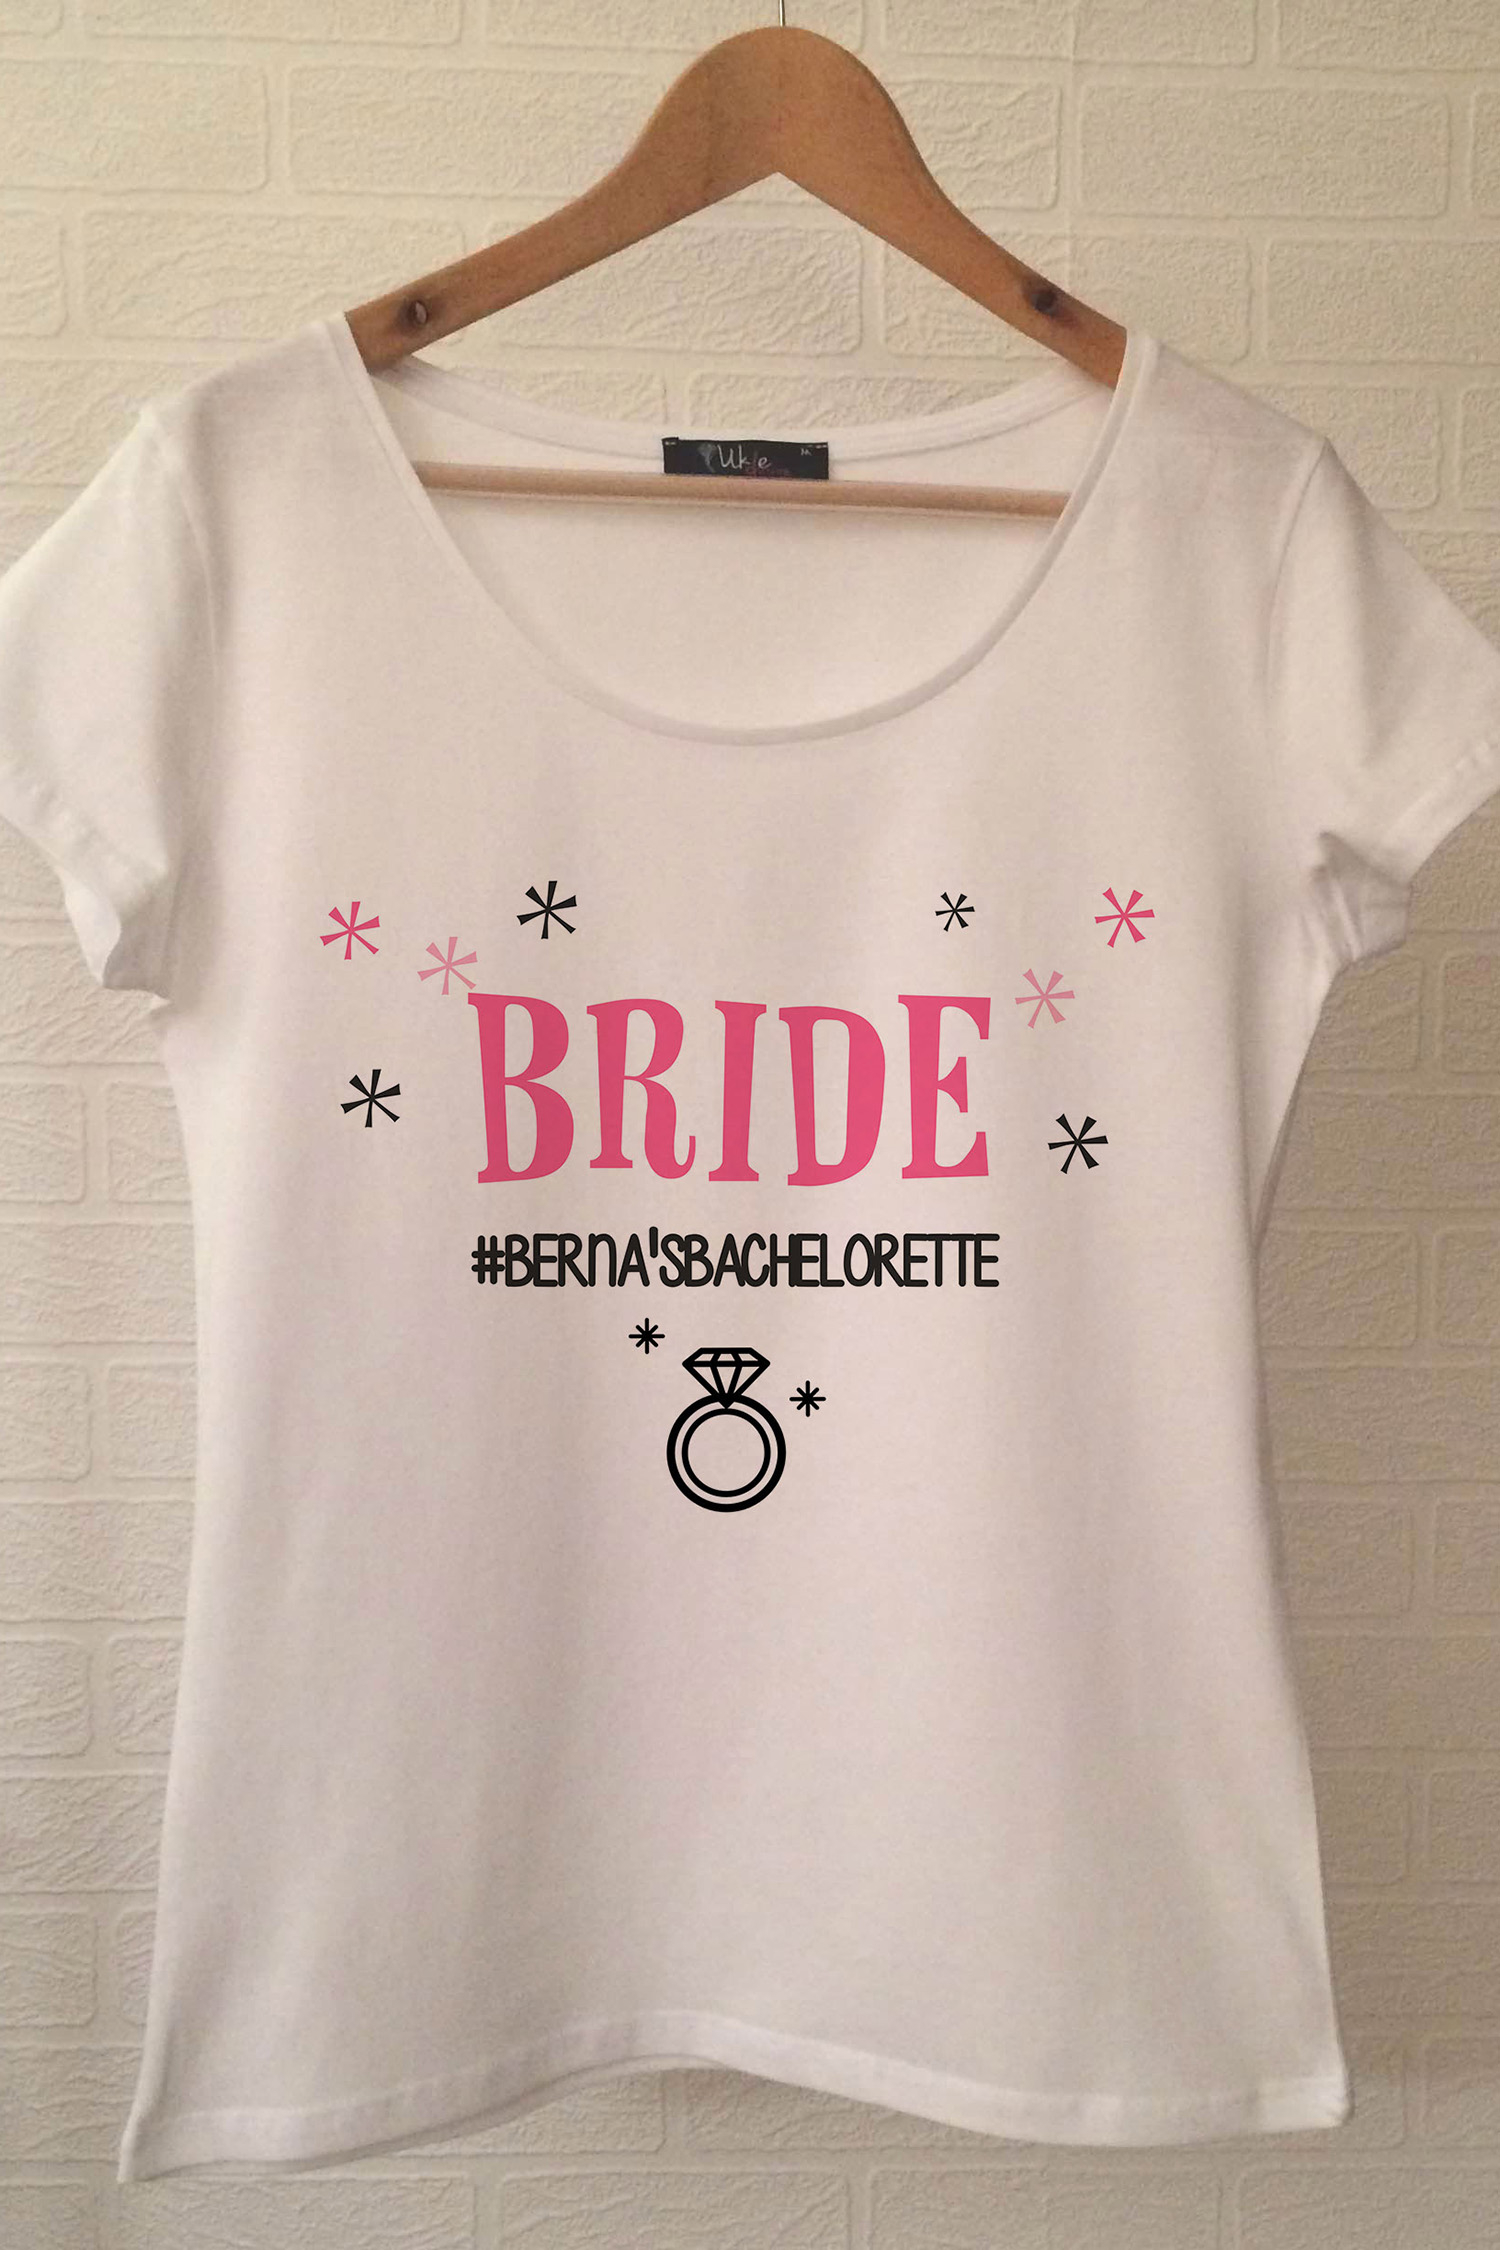 Bride T-shirt ukde71